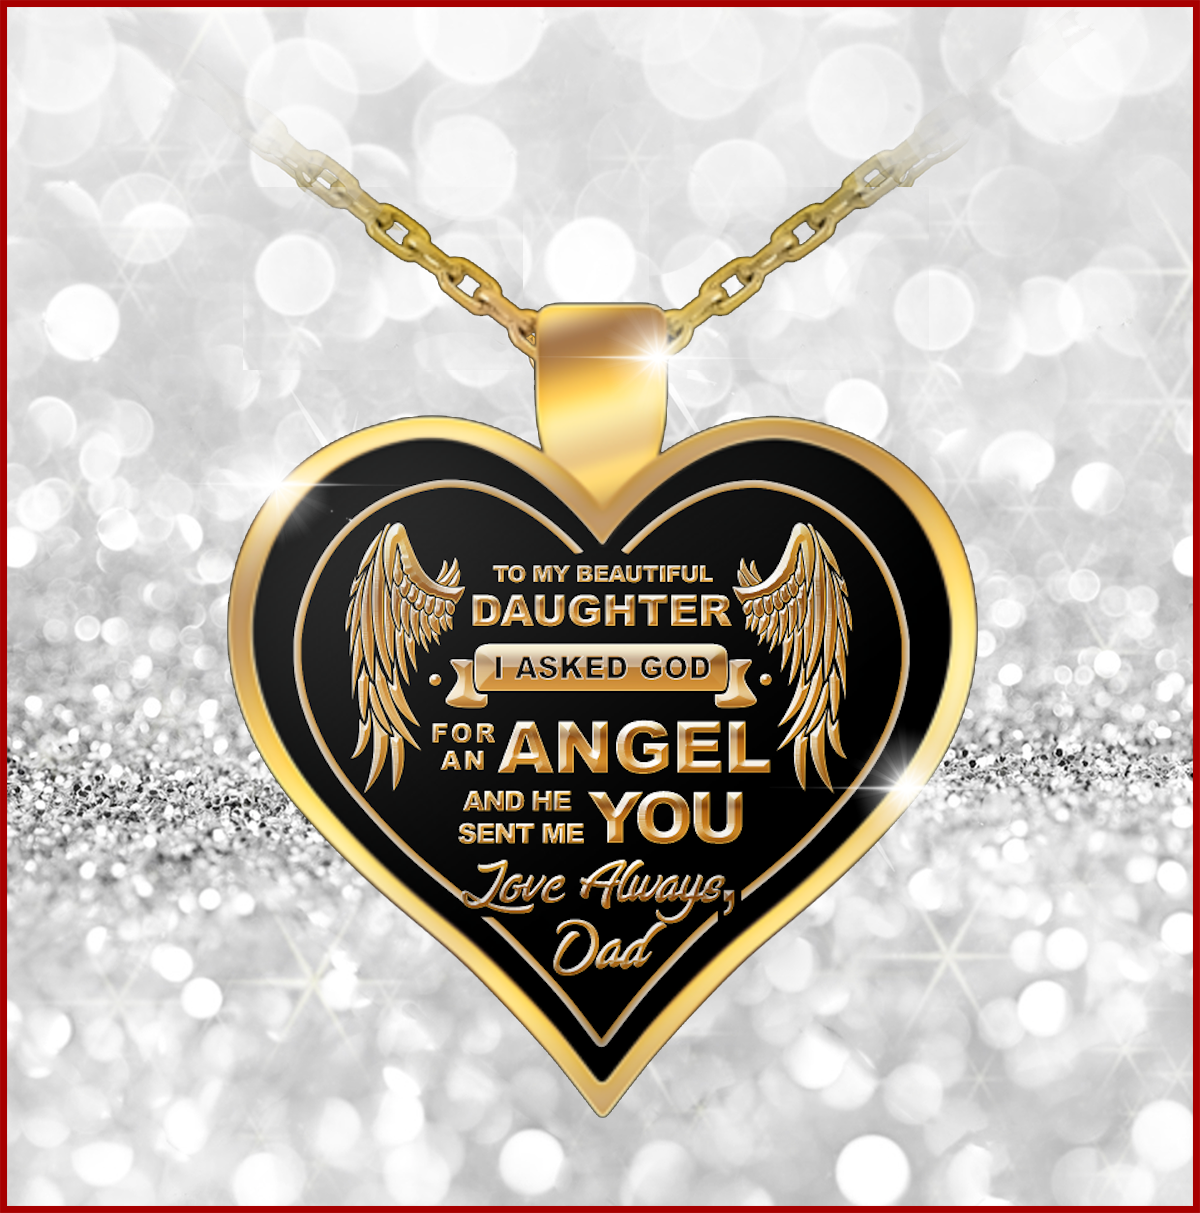 Always Remember That Daddy Loves You 18 K Gold Plated Personalized Engraving Girls Necklace Pendant to My Daughter Heart Xmas. Meaningful Gift for Her//Children On Birthday